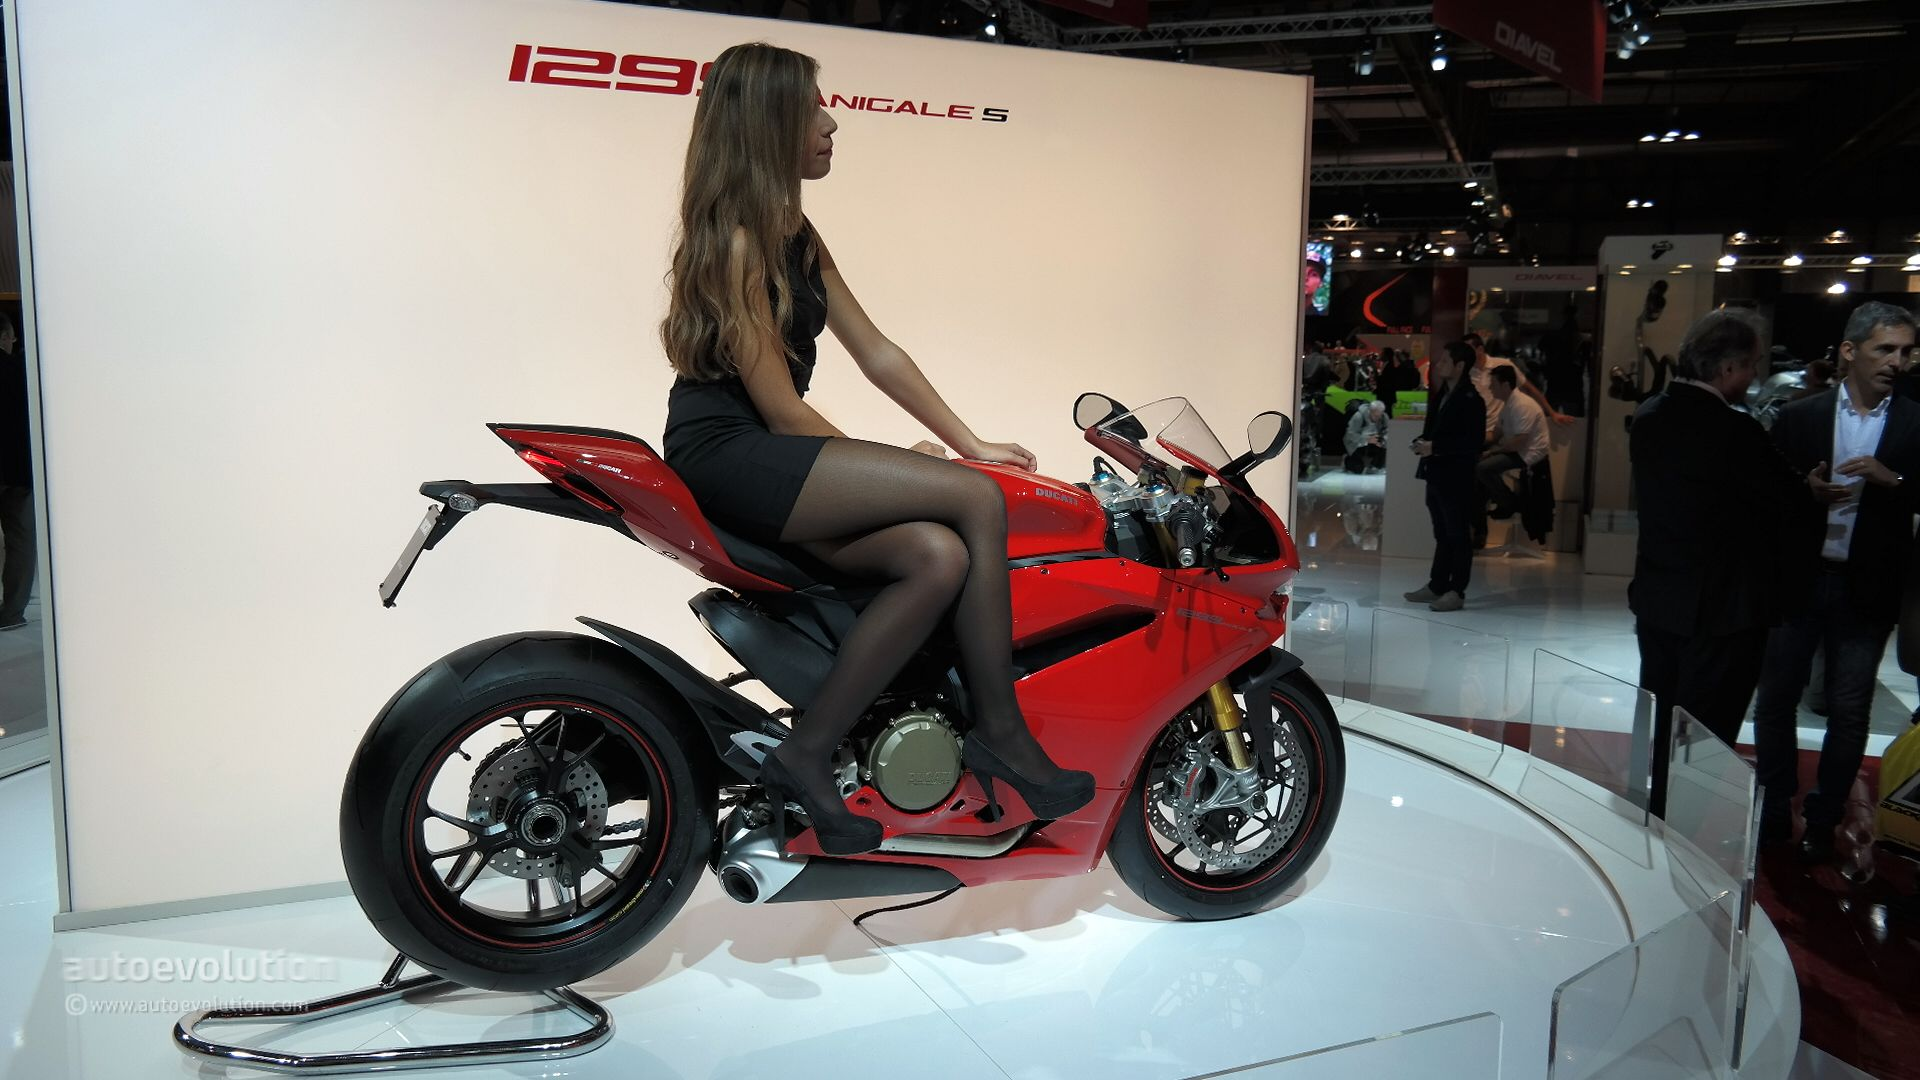 Panigale 1299 Wallpaper 2015 Ducati 1299 Panigale s